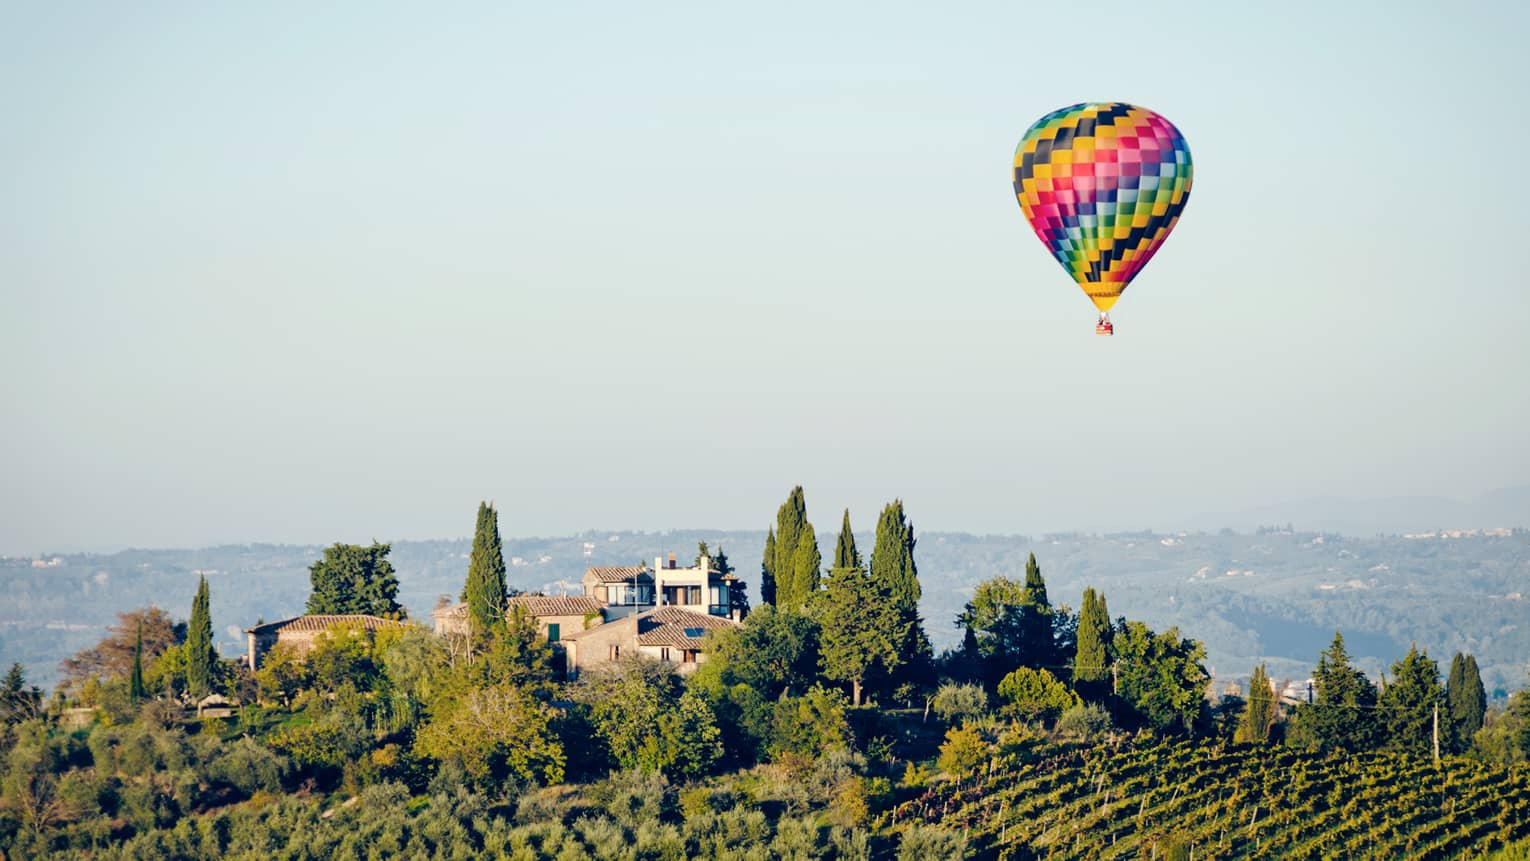 A colorful hot air balloon hovering over a vineyard in Florence